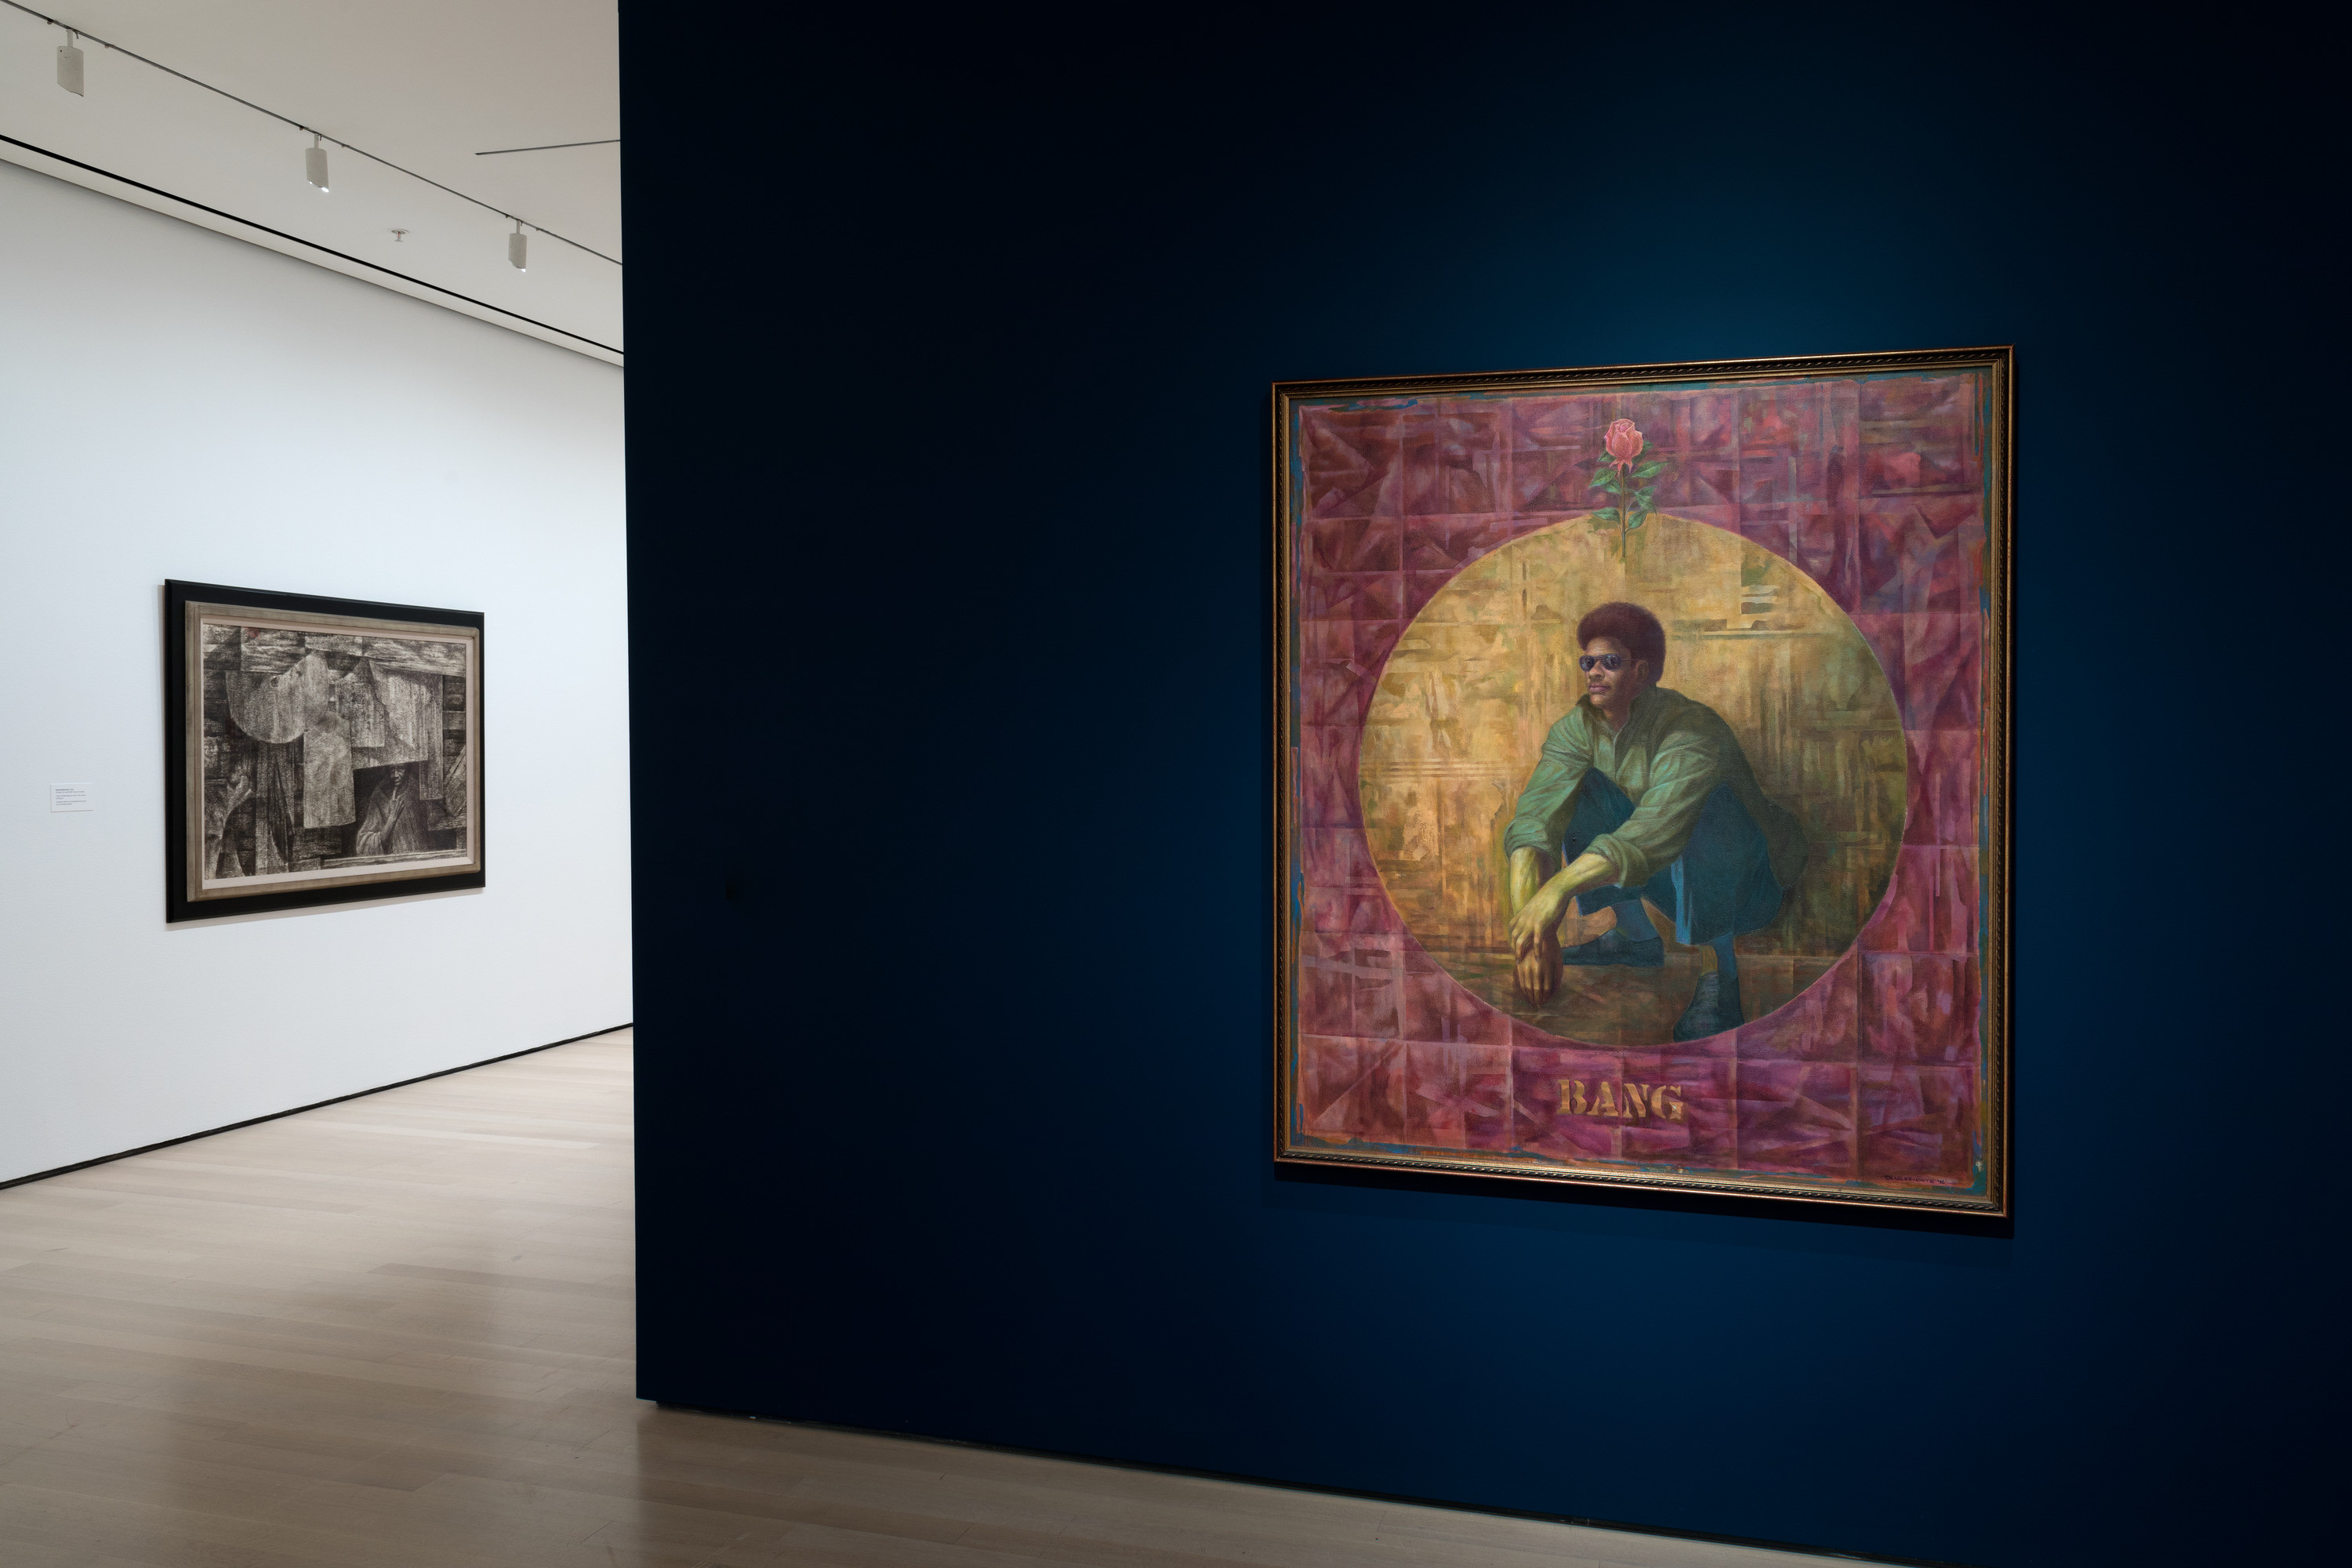 Installation view of the exhibition Charles White: A Retrospective. October 7, 2018–January 13, 2019. The Museum of Modern Art, New York. Digital Image © 2018 The Museum of Modern Art, New York. Photo by Robert Gerhardt.